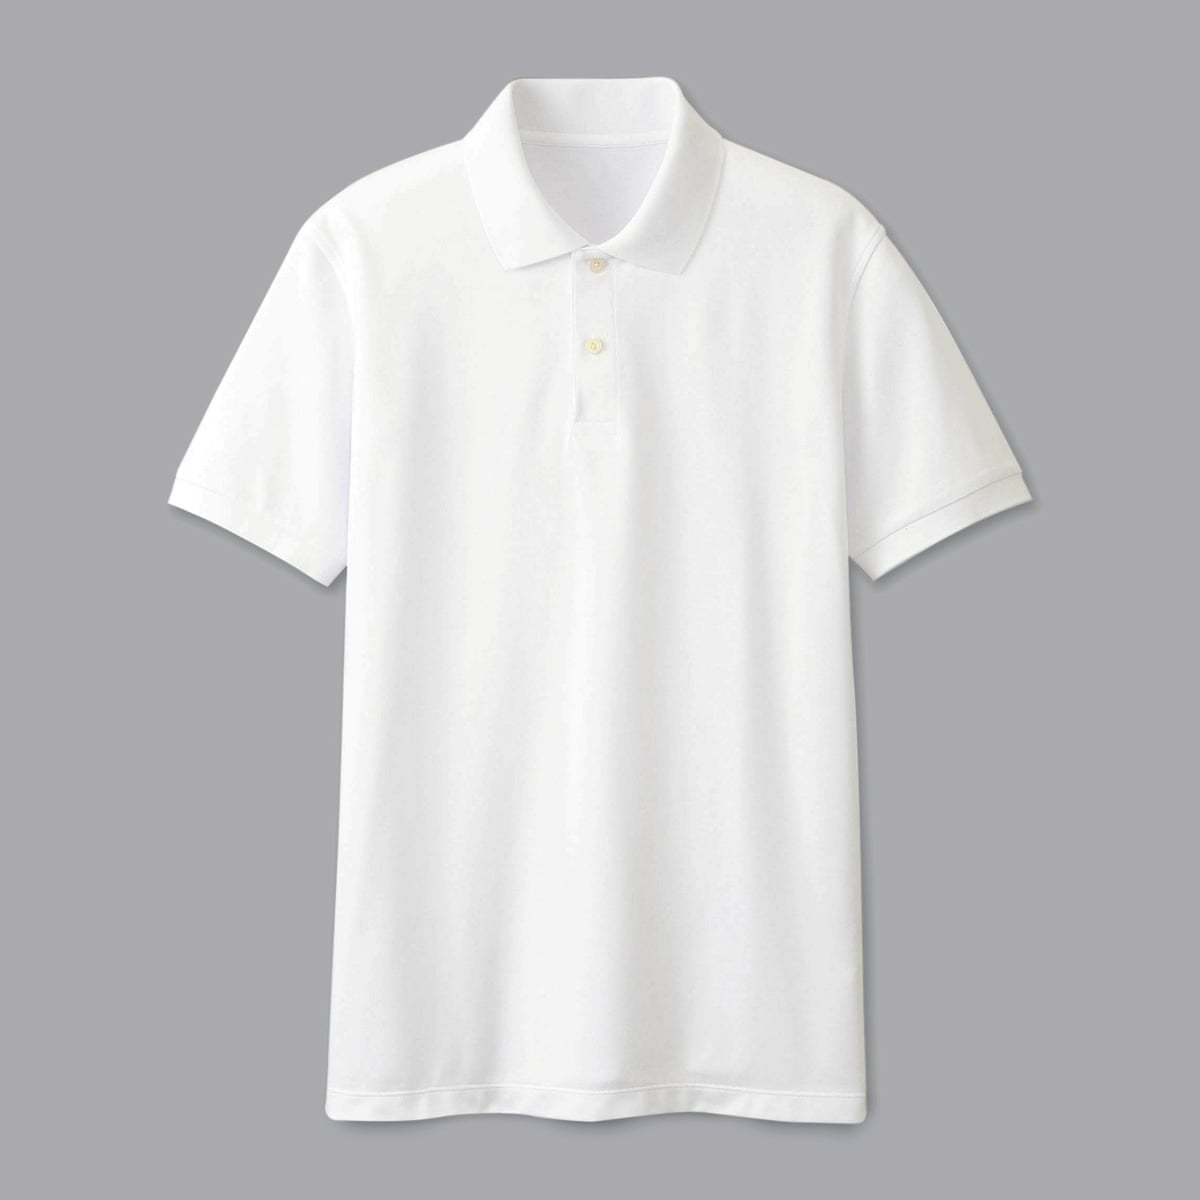 The white polo shirt: how the alt-right co-opted a modern classic | Fashion  | The Guardian